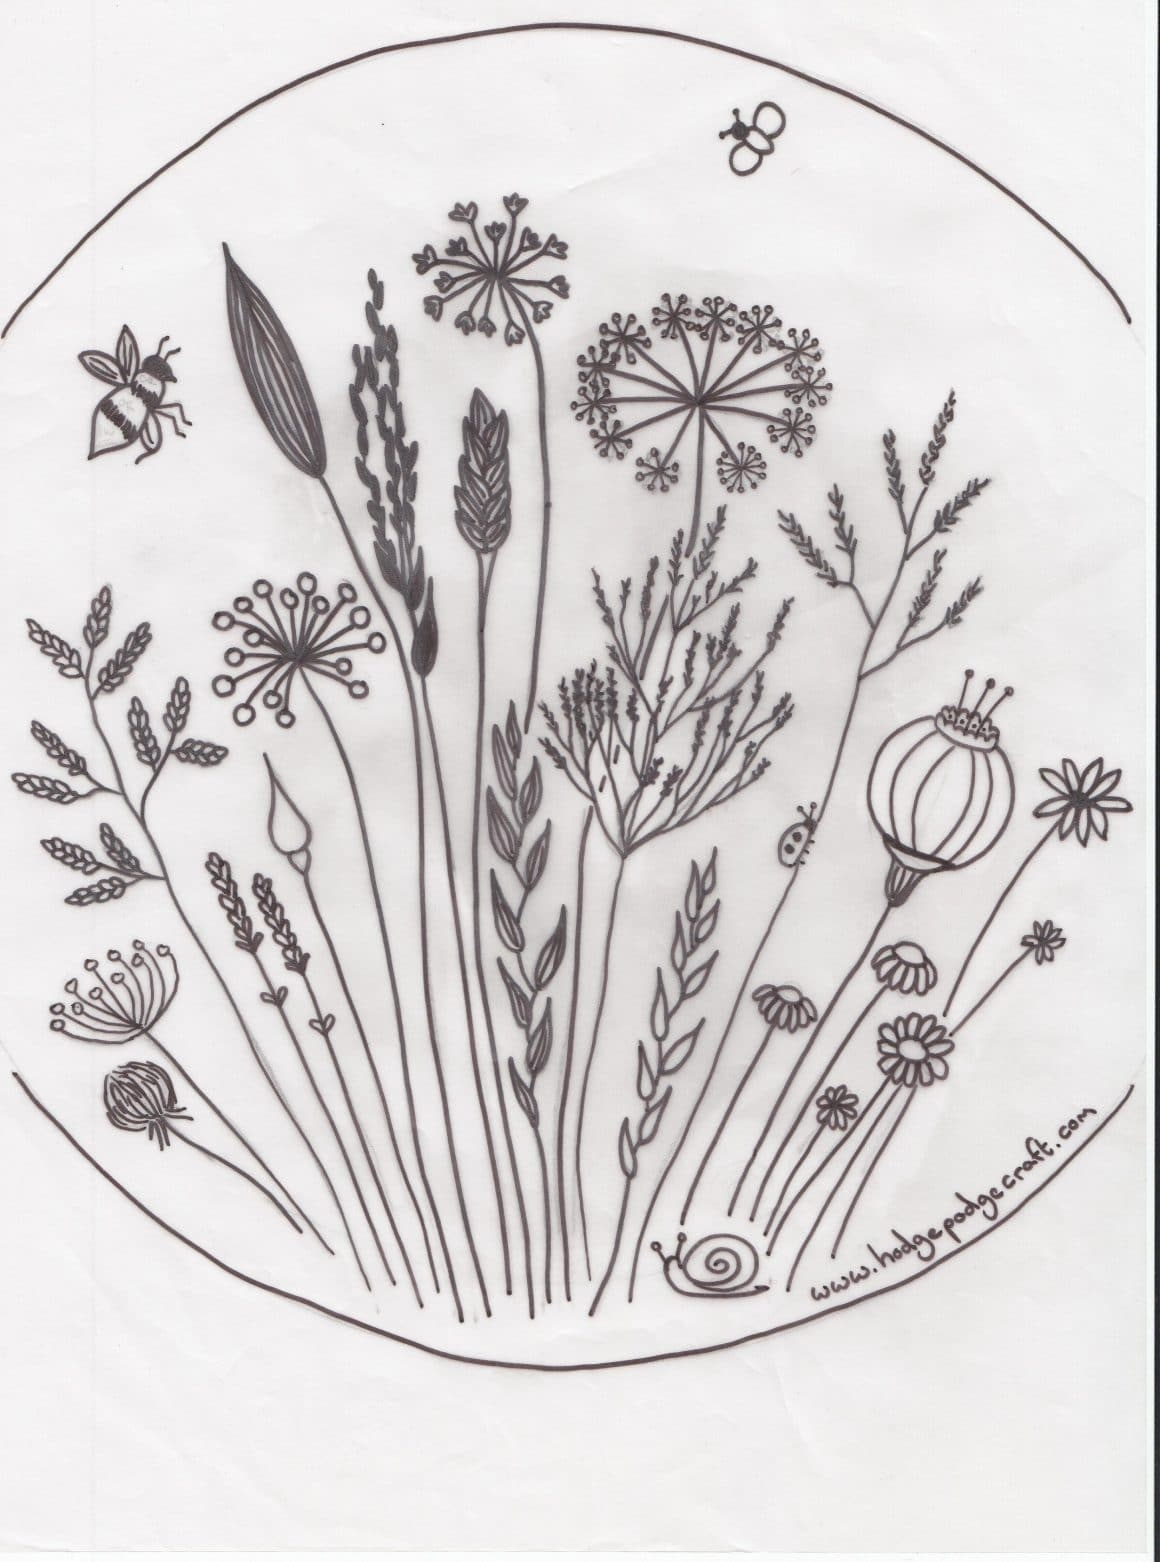 Free Floral Meadow Embroidery Pattern - Free Printable Embroidery Patterns